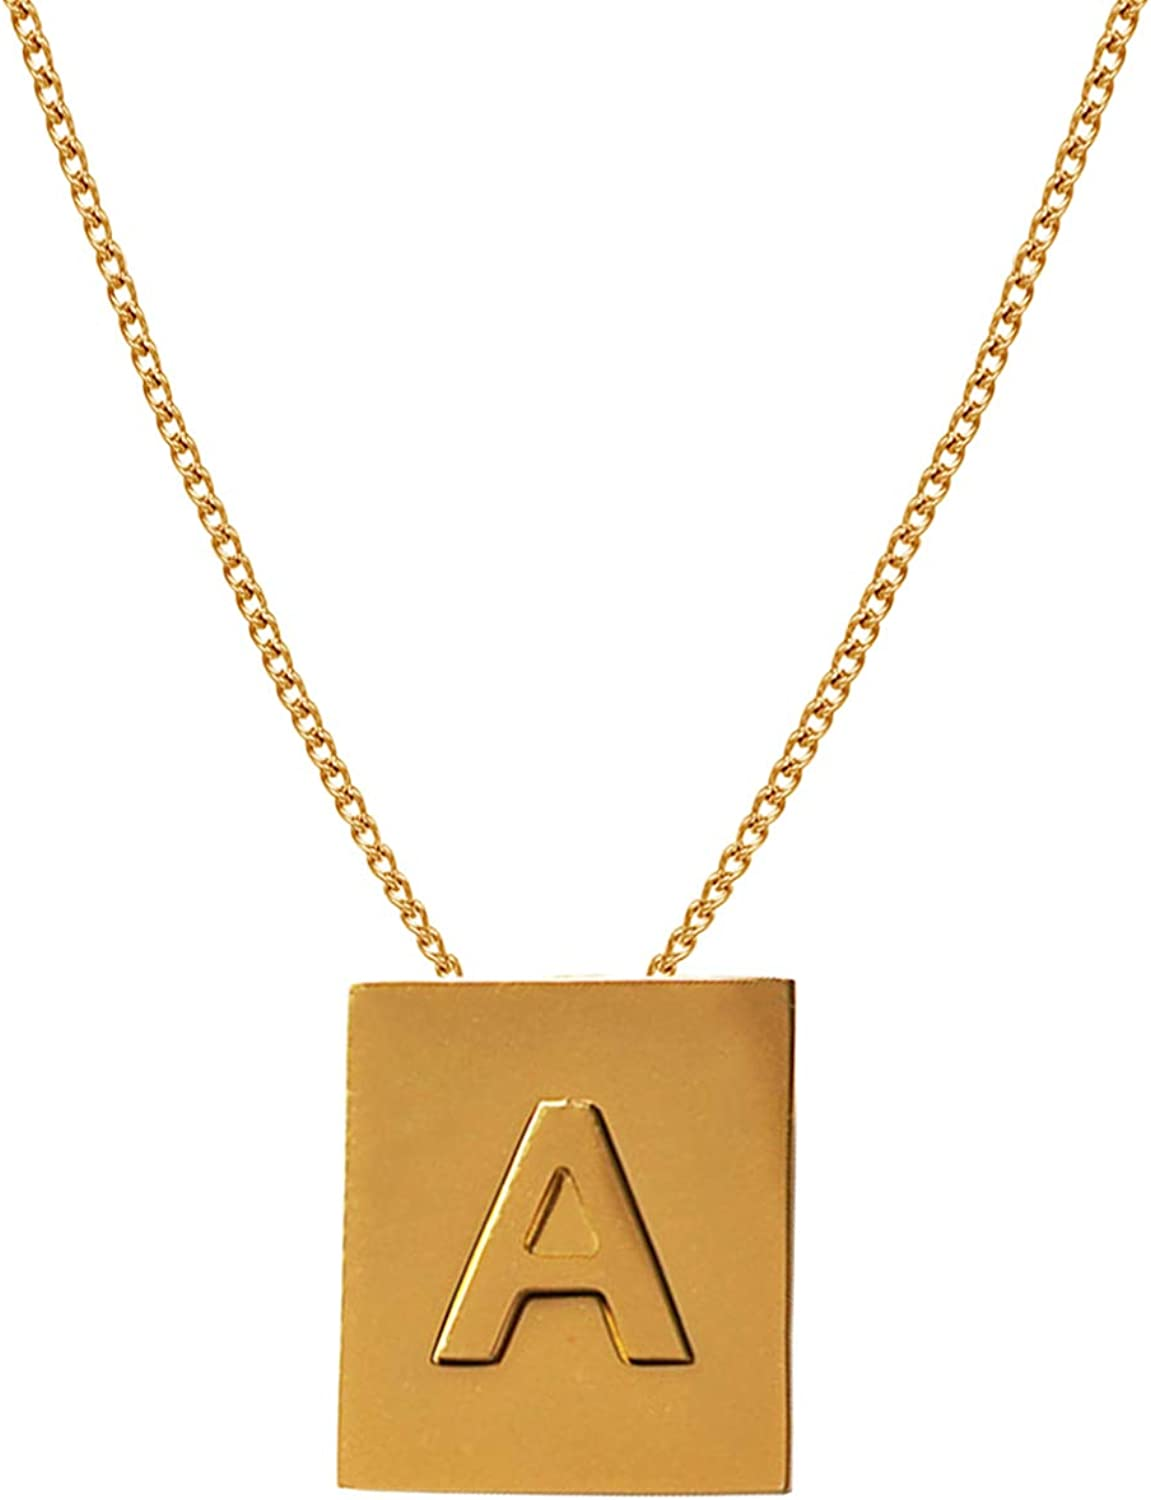 Nkoluky Women Initial Necklace Engraved Tag 18k Gold Plated Personalized Letter Pendant Jewelry